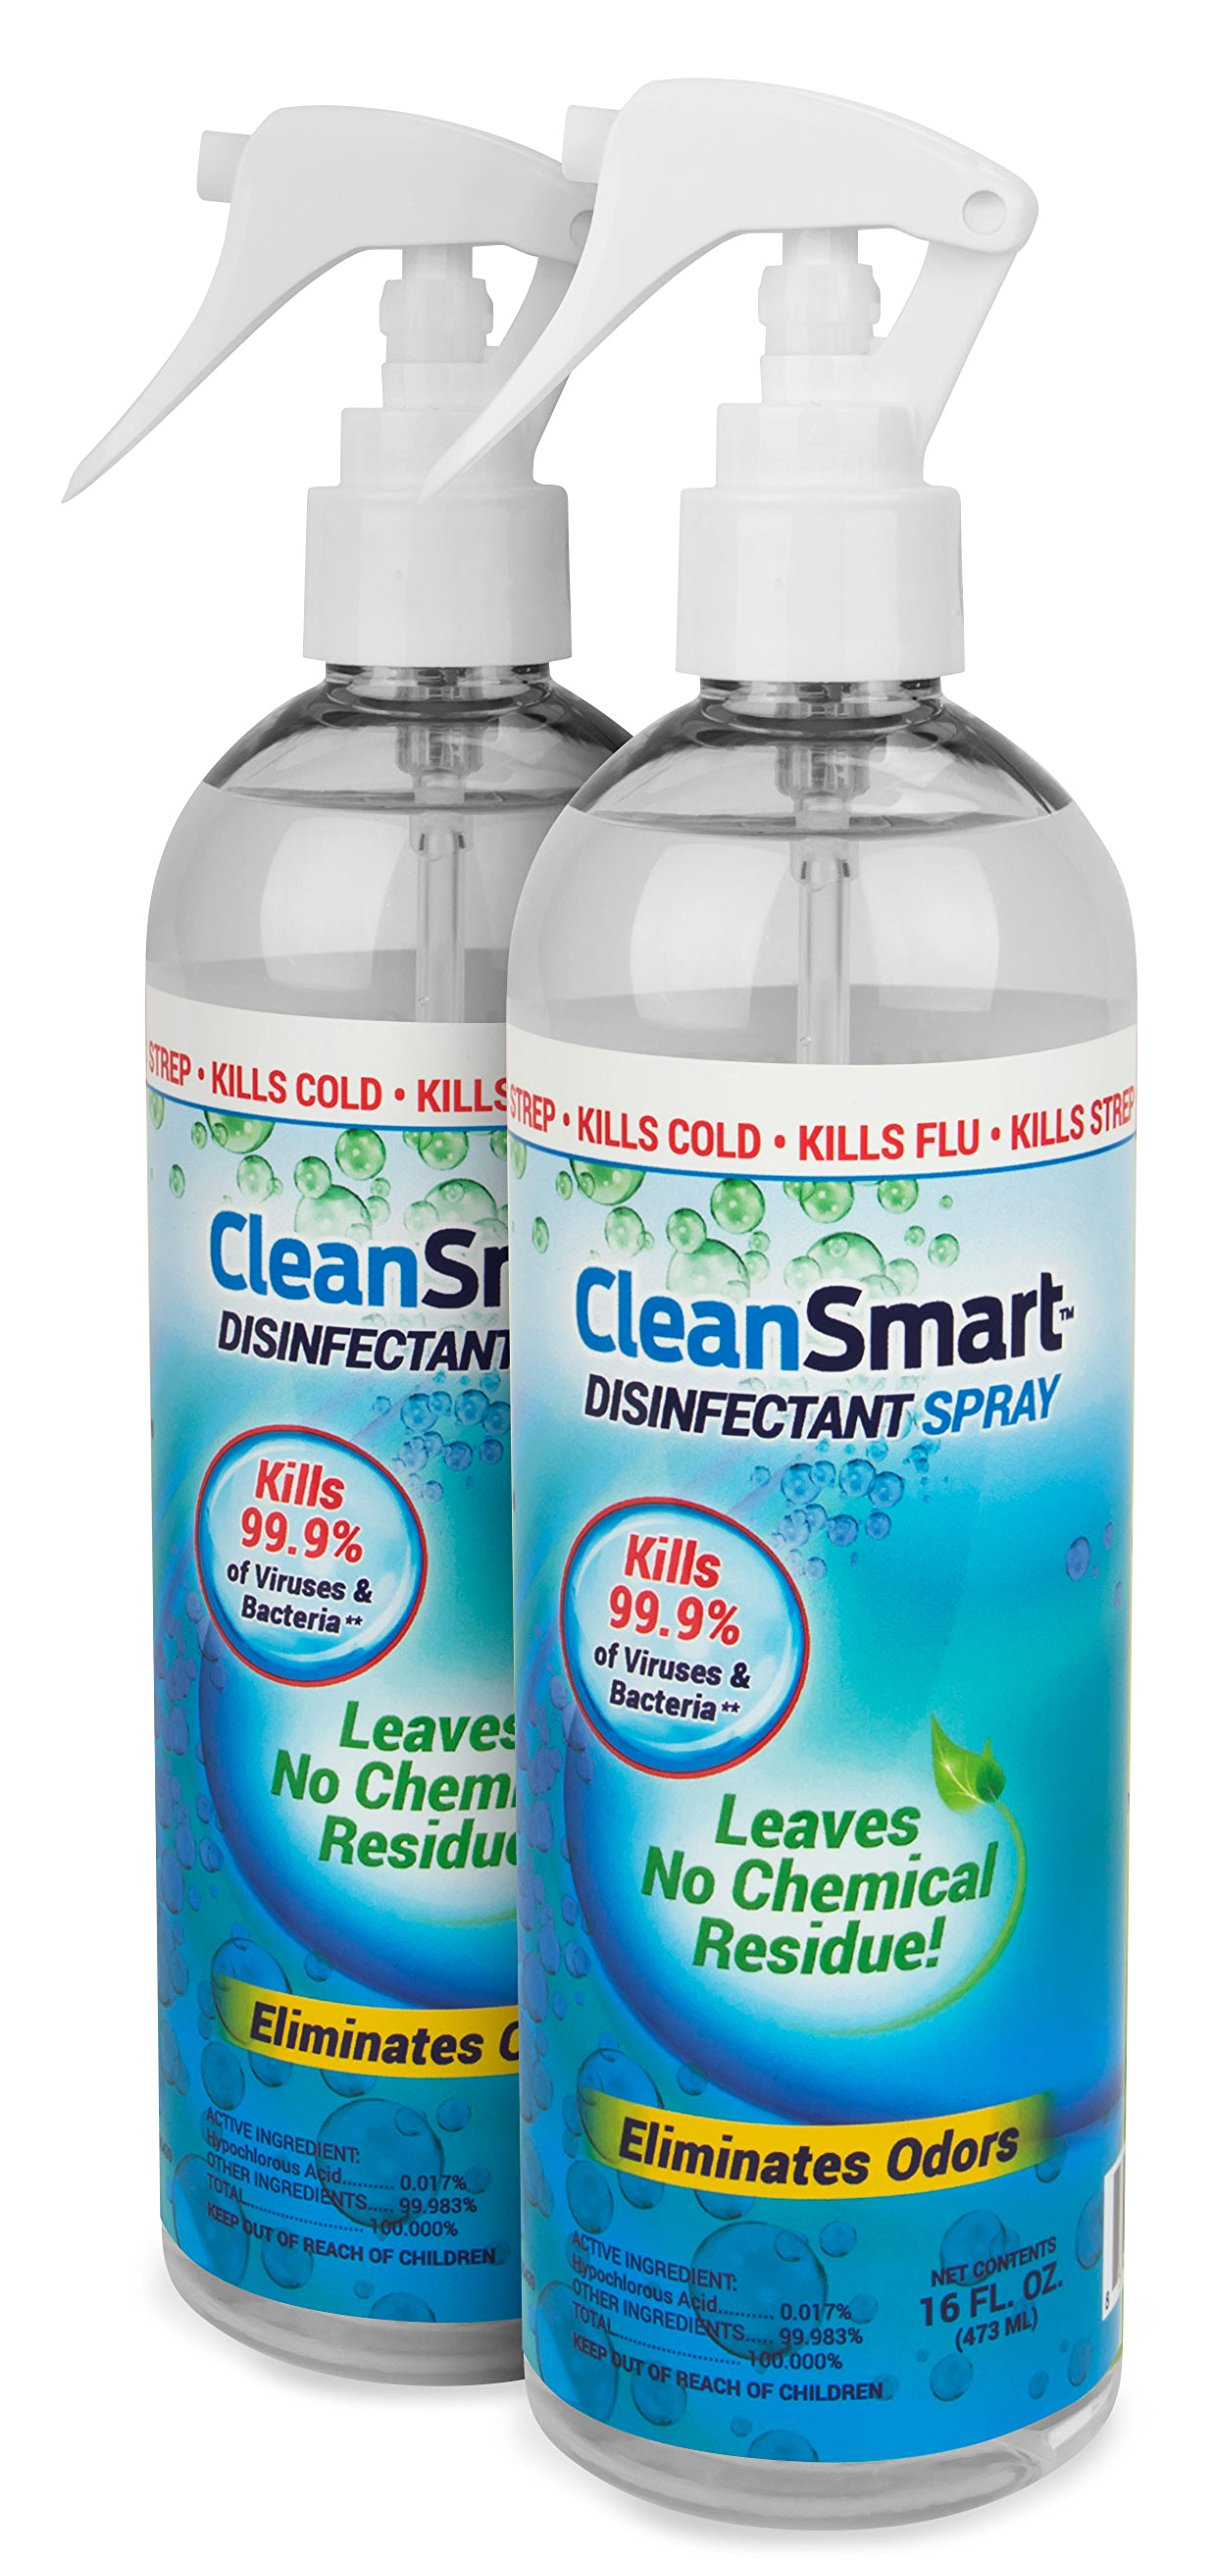 CleanSmart Disinfectant Spray Mist Kills 99.9% of Viruses, Bacteria, Germs, Mold, Fungus. Leaves No Chemical Residue! 16oz. 2Pk. Great to Clean and Sanitize CPAP Masks, Parts & Air Dry.